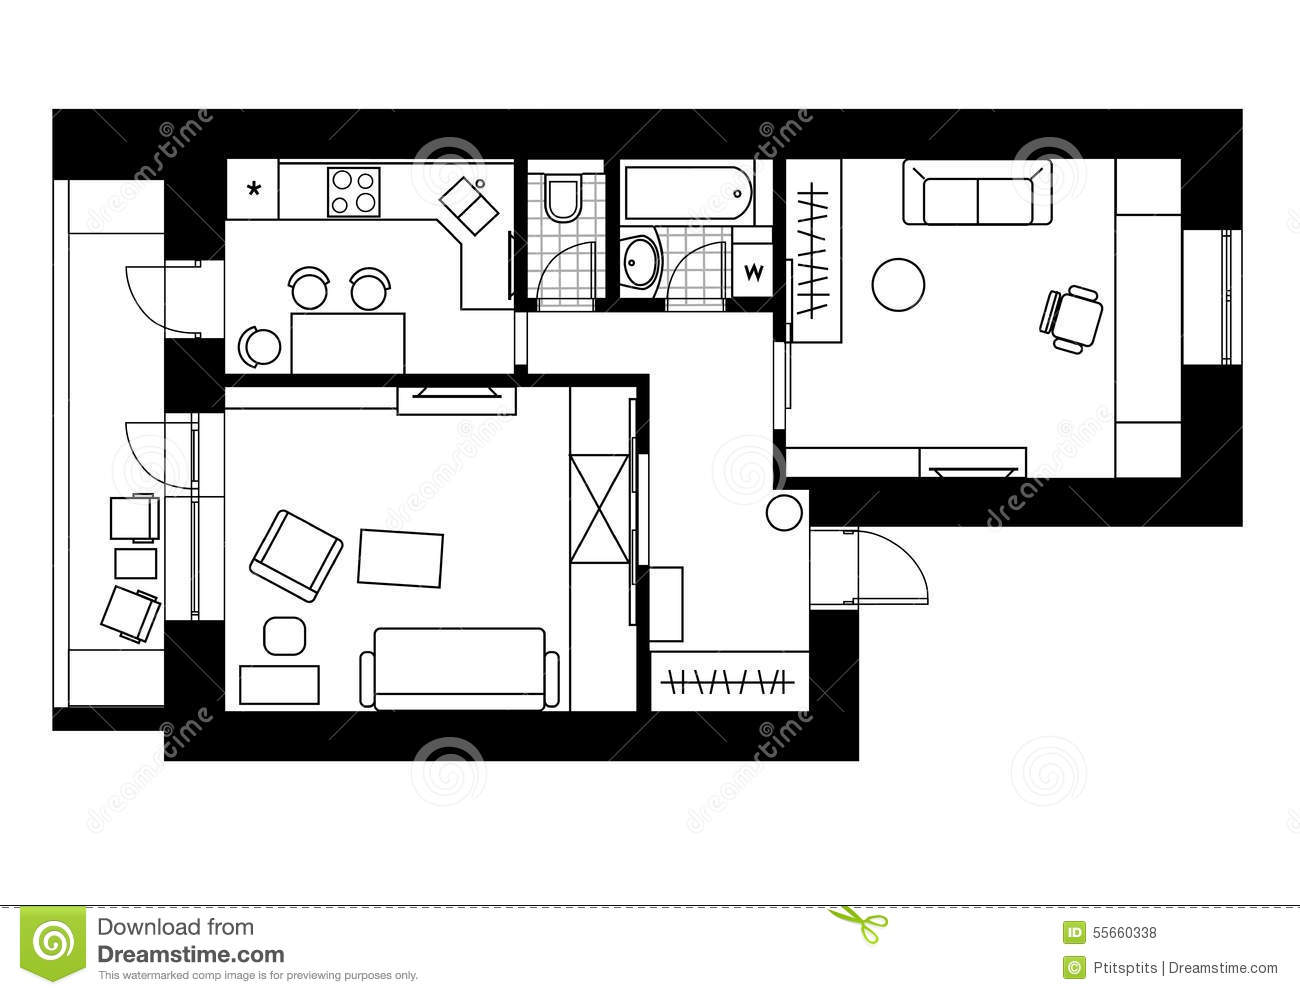 Int rieur de plan de dessin de l 39 appartement avec une for Architecture de plan libre